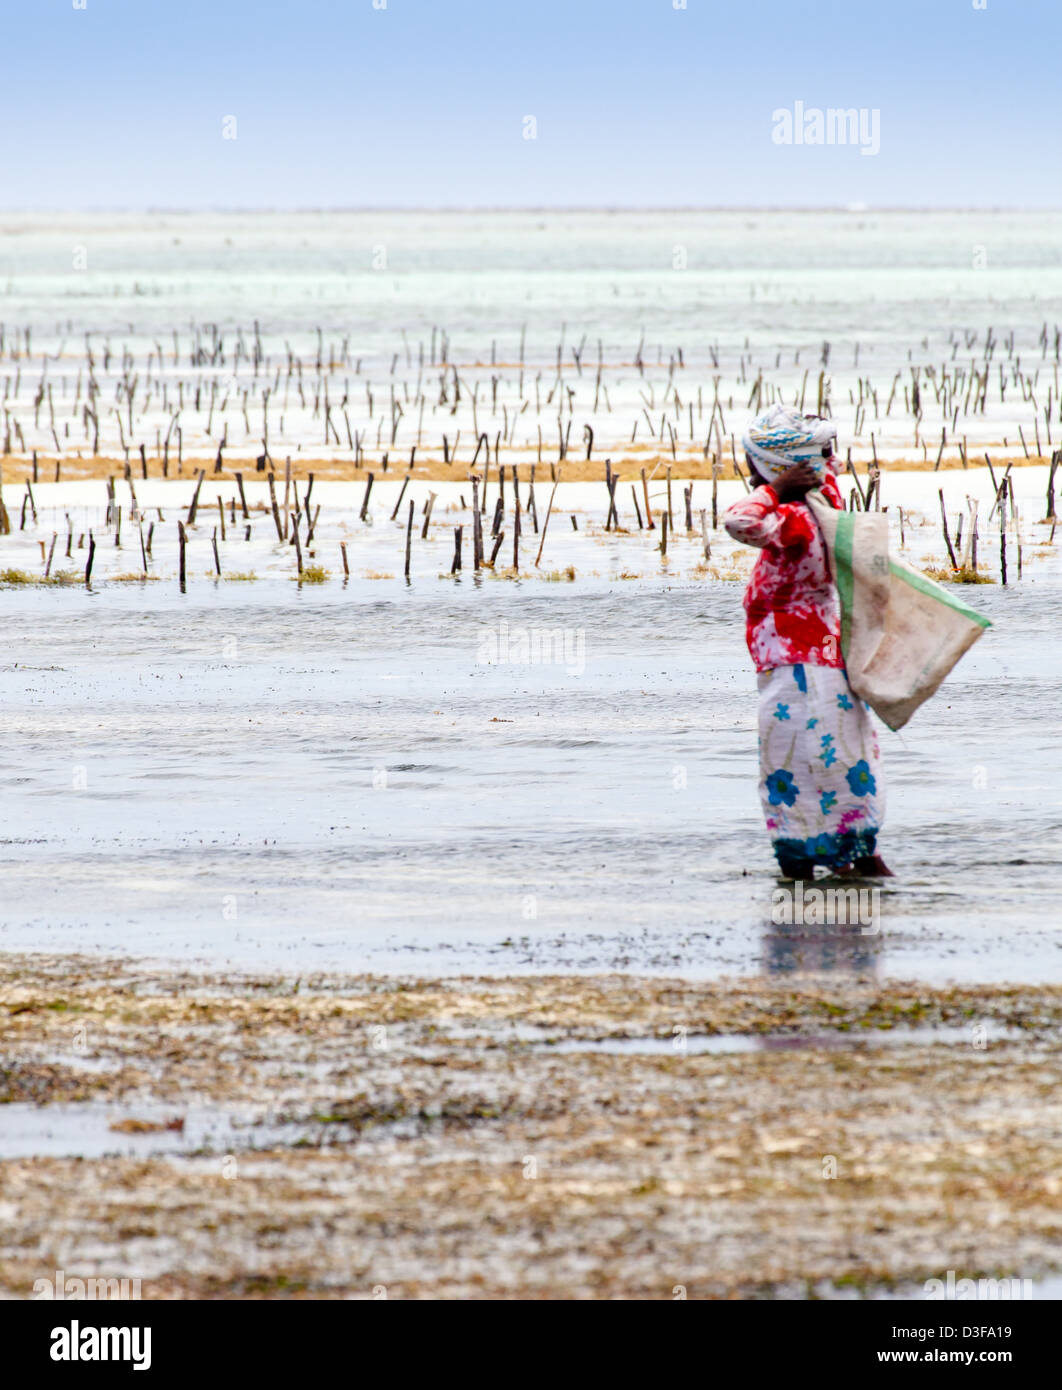 seaweed farmer in zanzibar stockfotos seaweed farmer in zanzibar bilder alamy. Black Bedroom Furniture Sets. Home Design Ideas